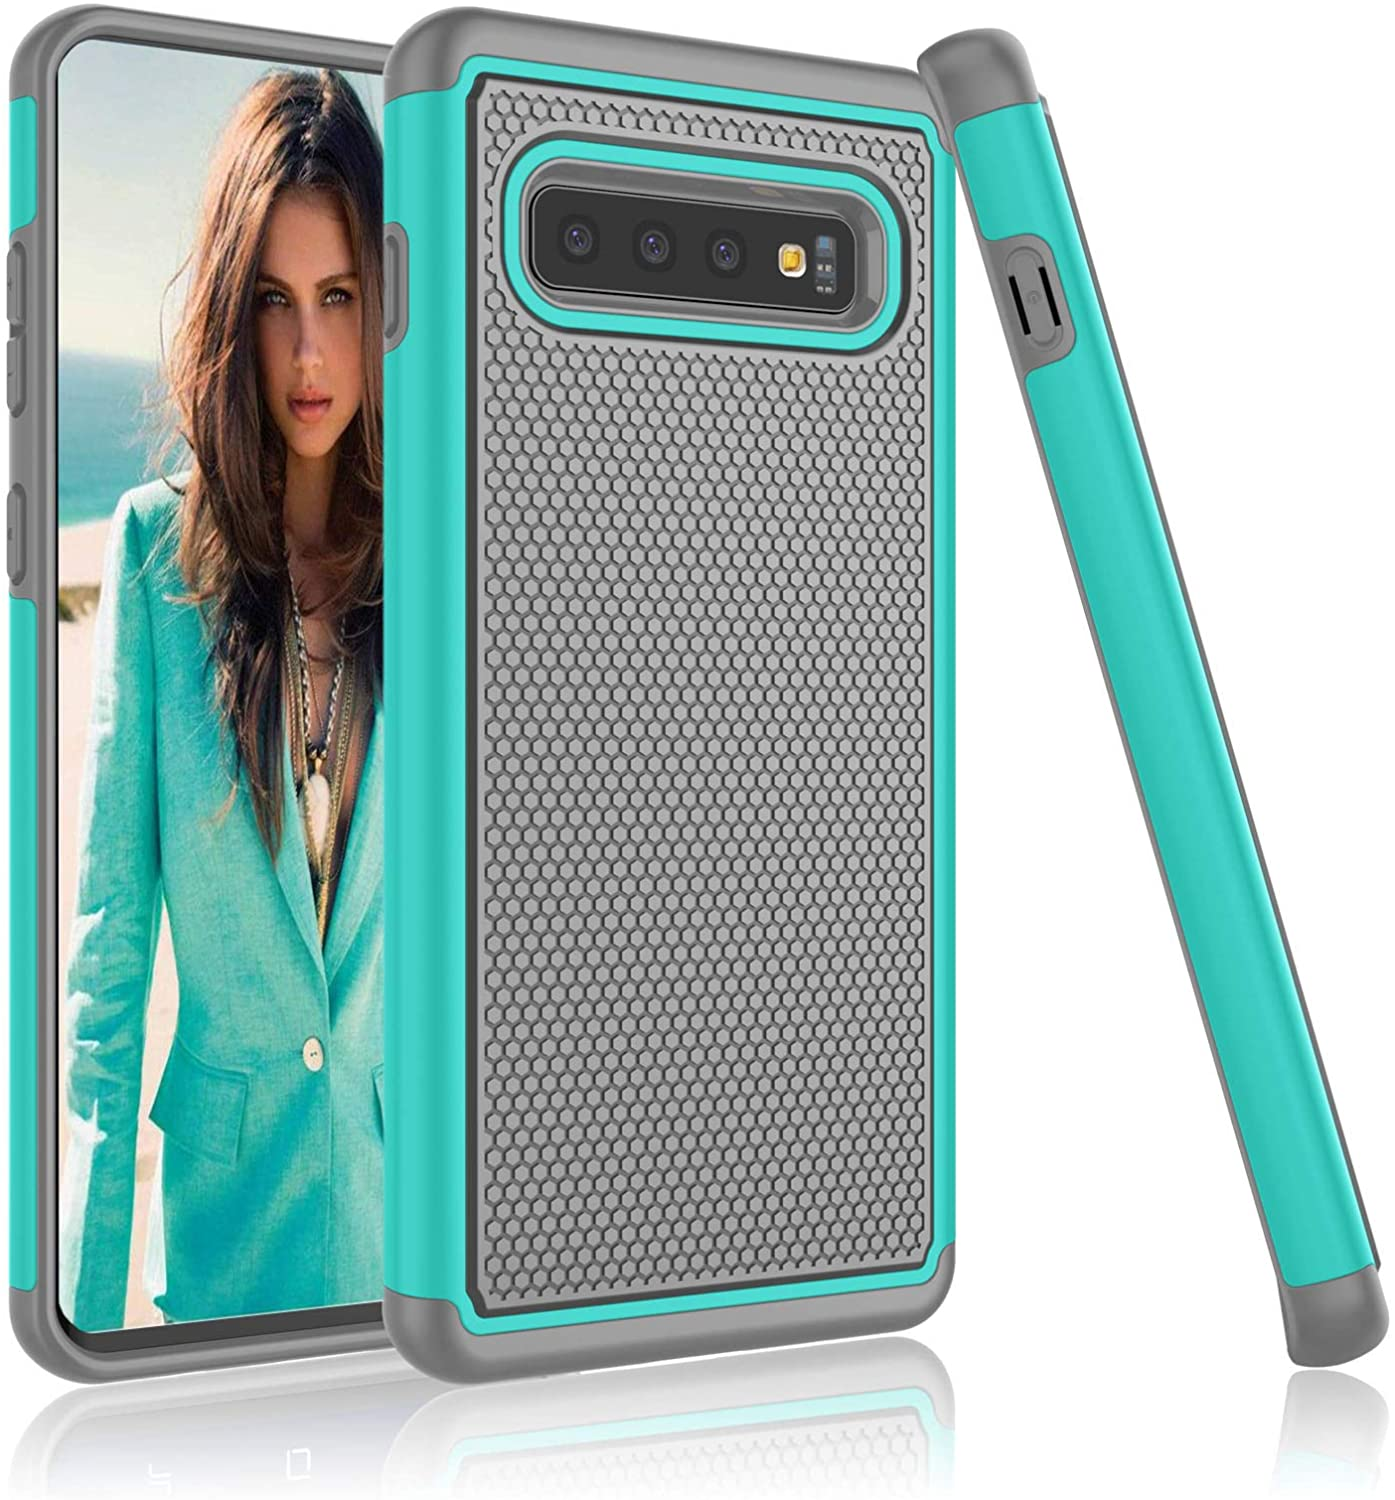 NJJEX Case Compatible with Samsung Galaxy S10, [Nveins] Hybrid Dual Layers Hard Plastic Back + Soft Silicone Rubber Armor Defender Shockproof Slim Phone Cover for Galaxy S10 6.1 Inch 2019 [Turquoise]